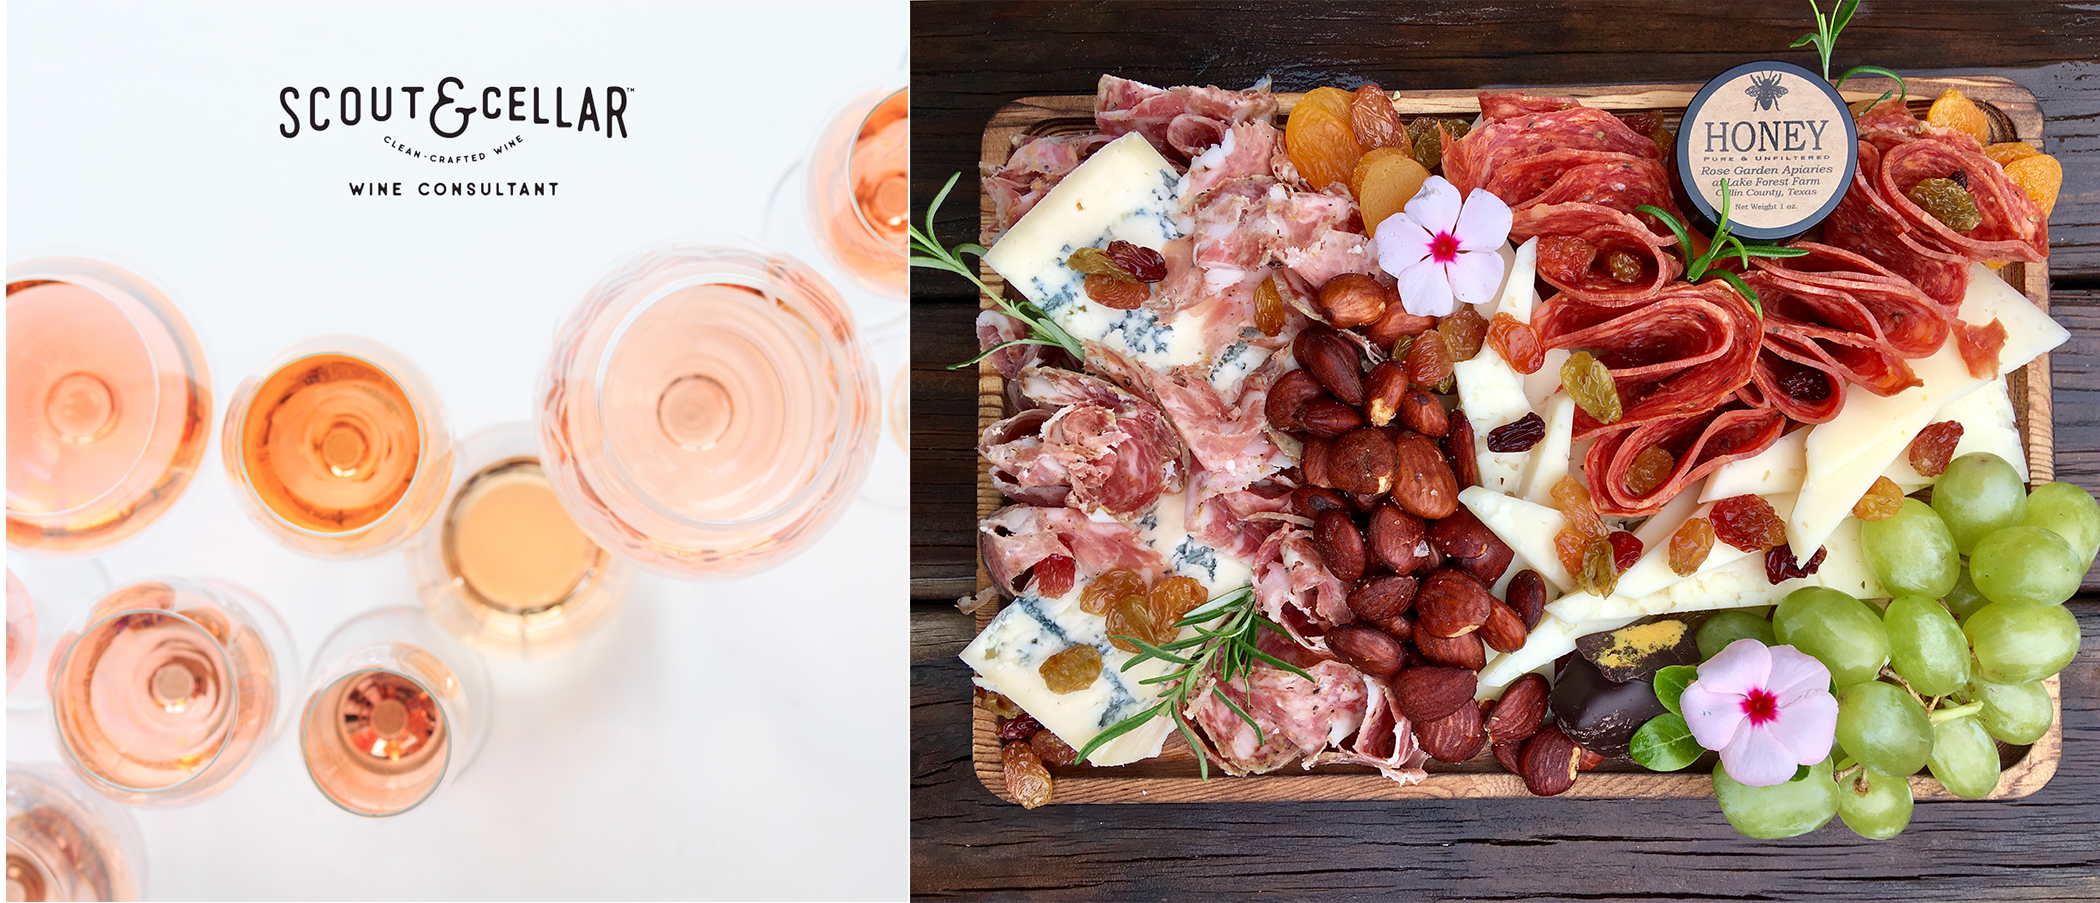 Scout and Cellar Wines| Fig + Goat Boards